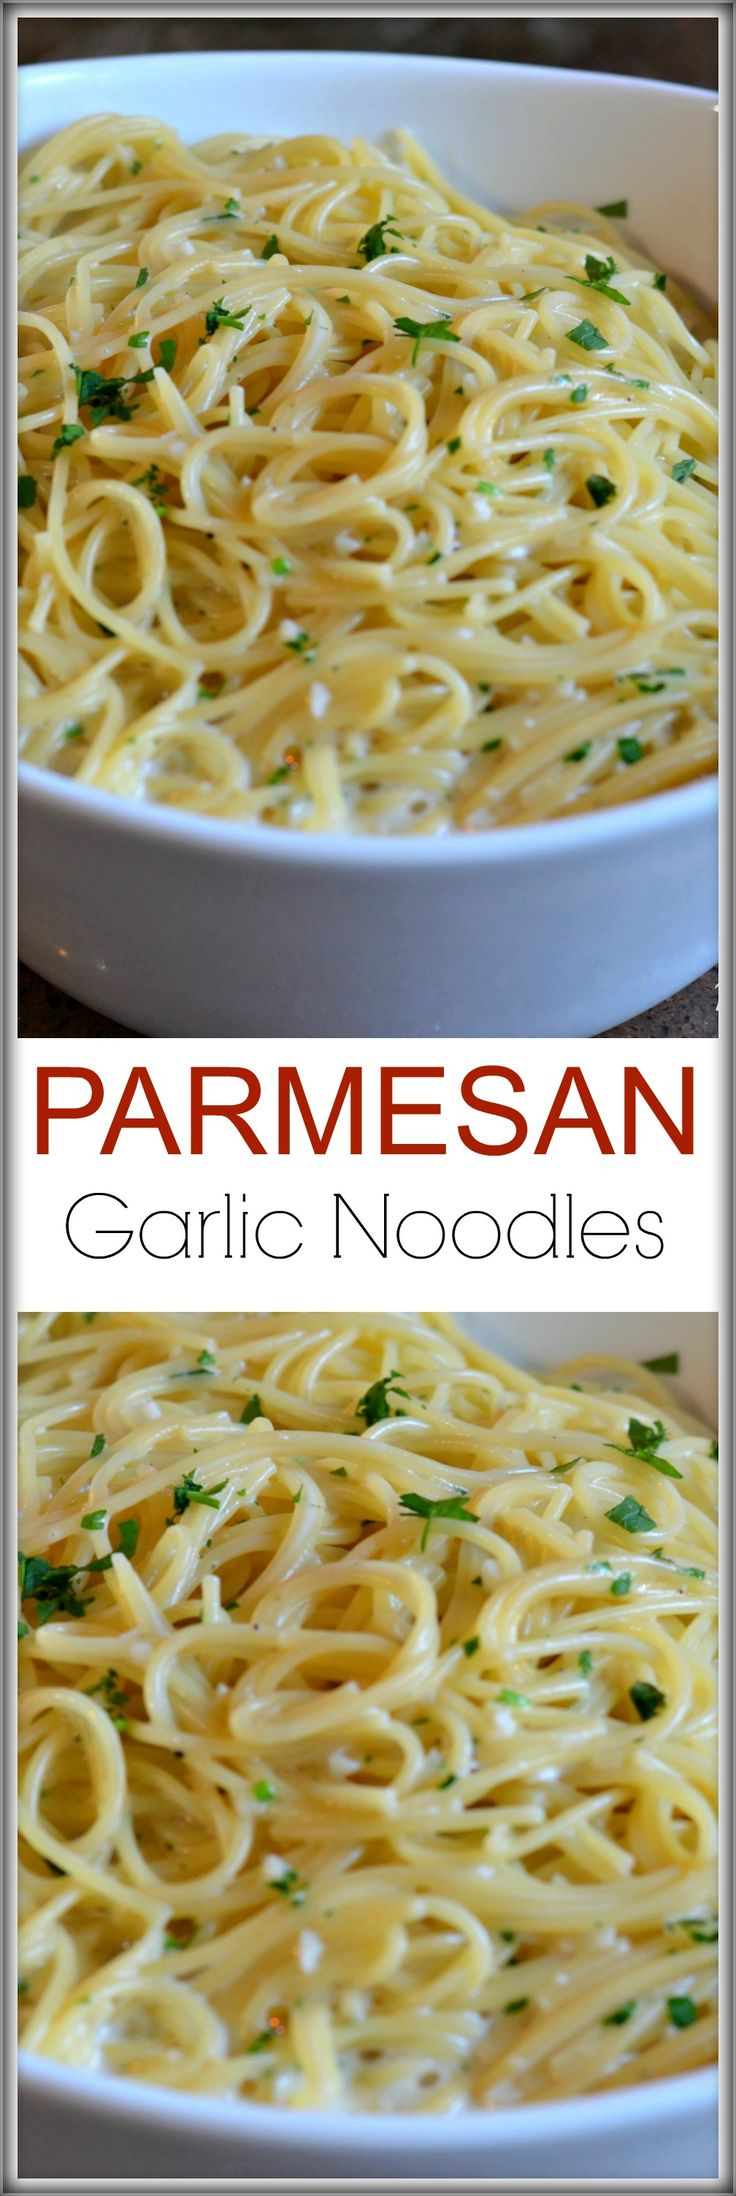 These Parmesan Garlic Noodles recipe is ready in 15 minutes and has loads of fresh garlic, butter, parsley and cheese!